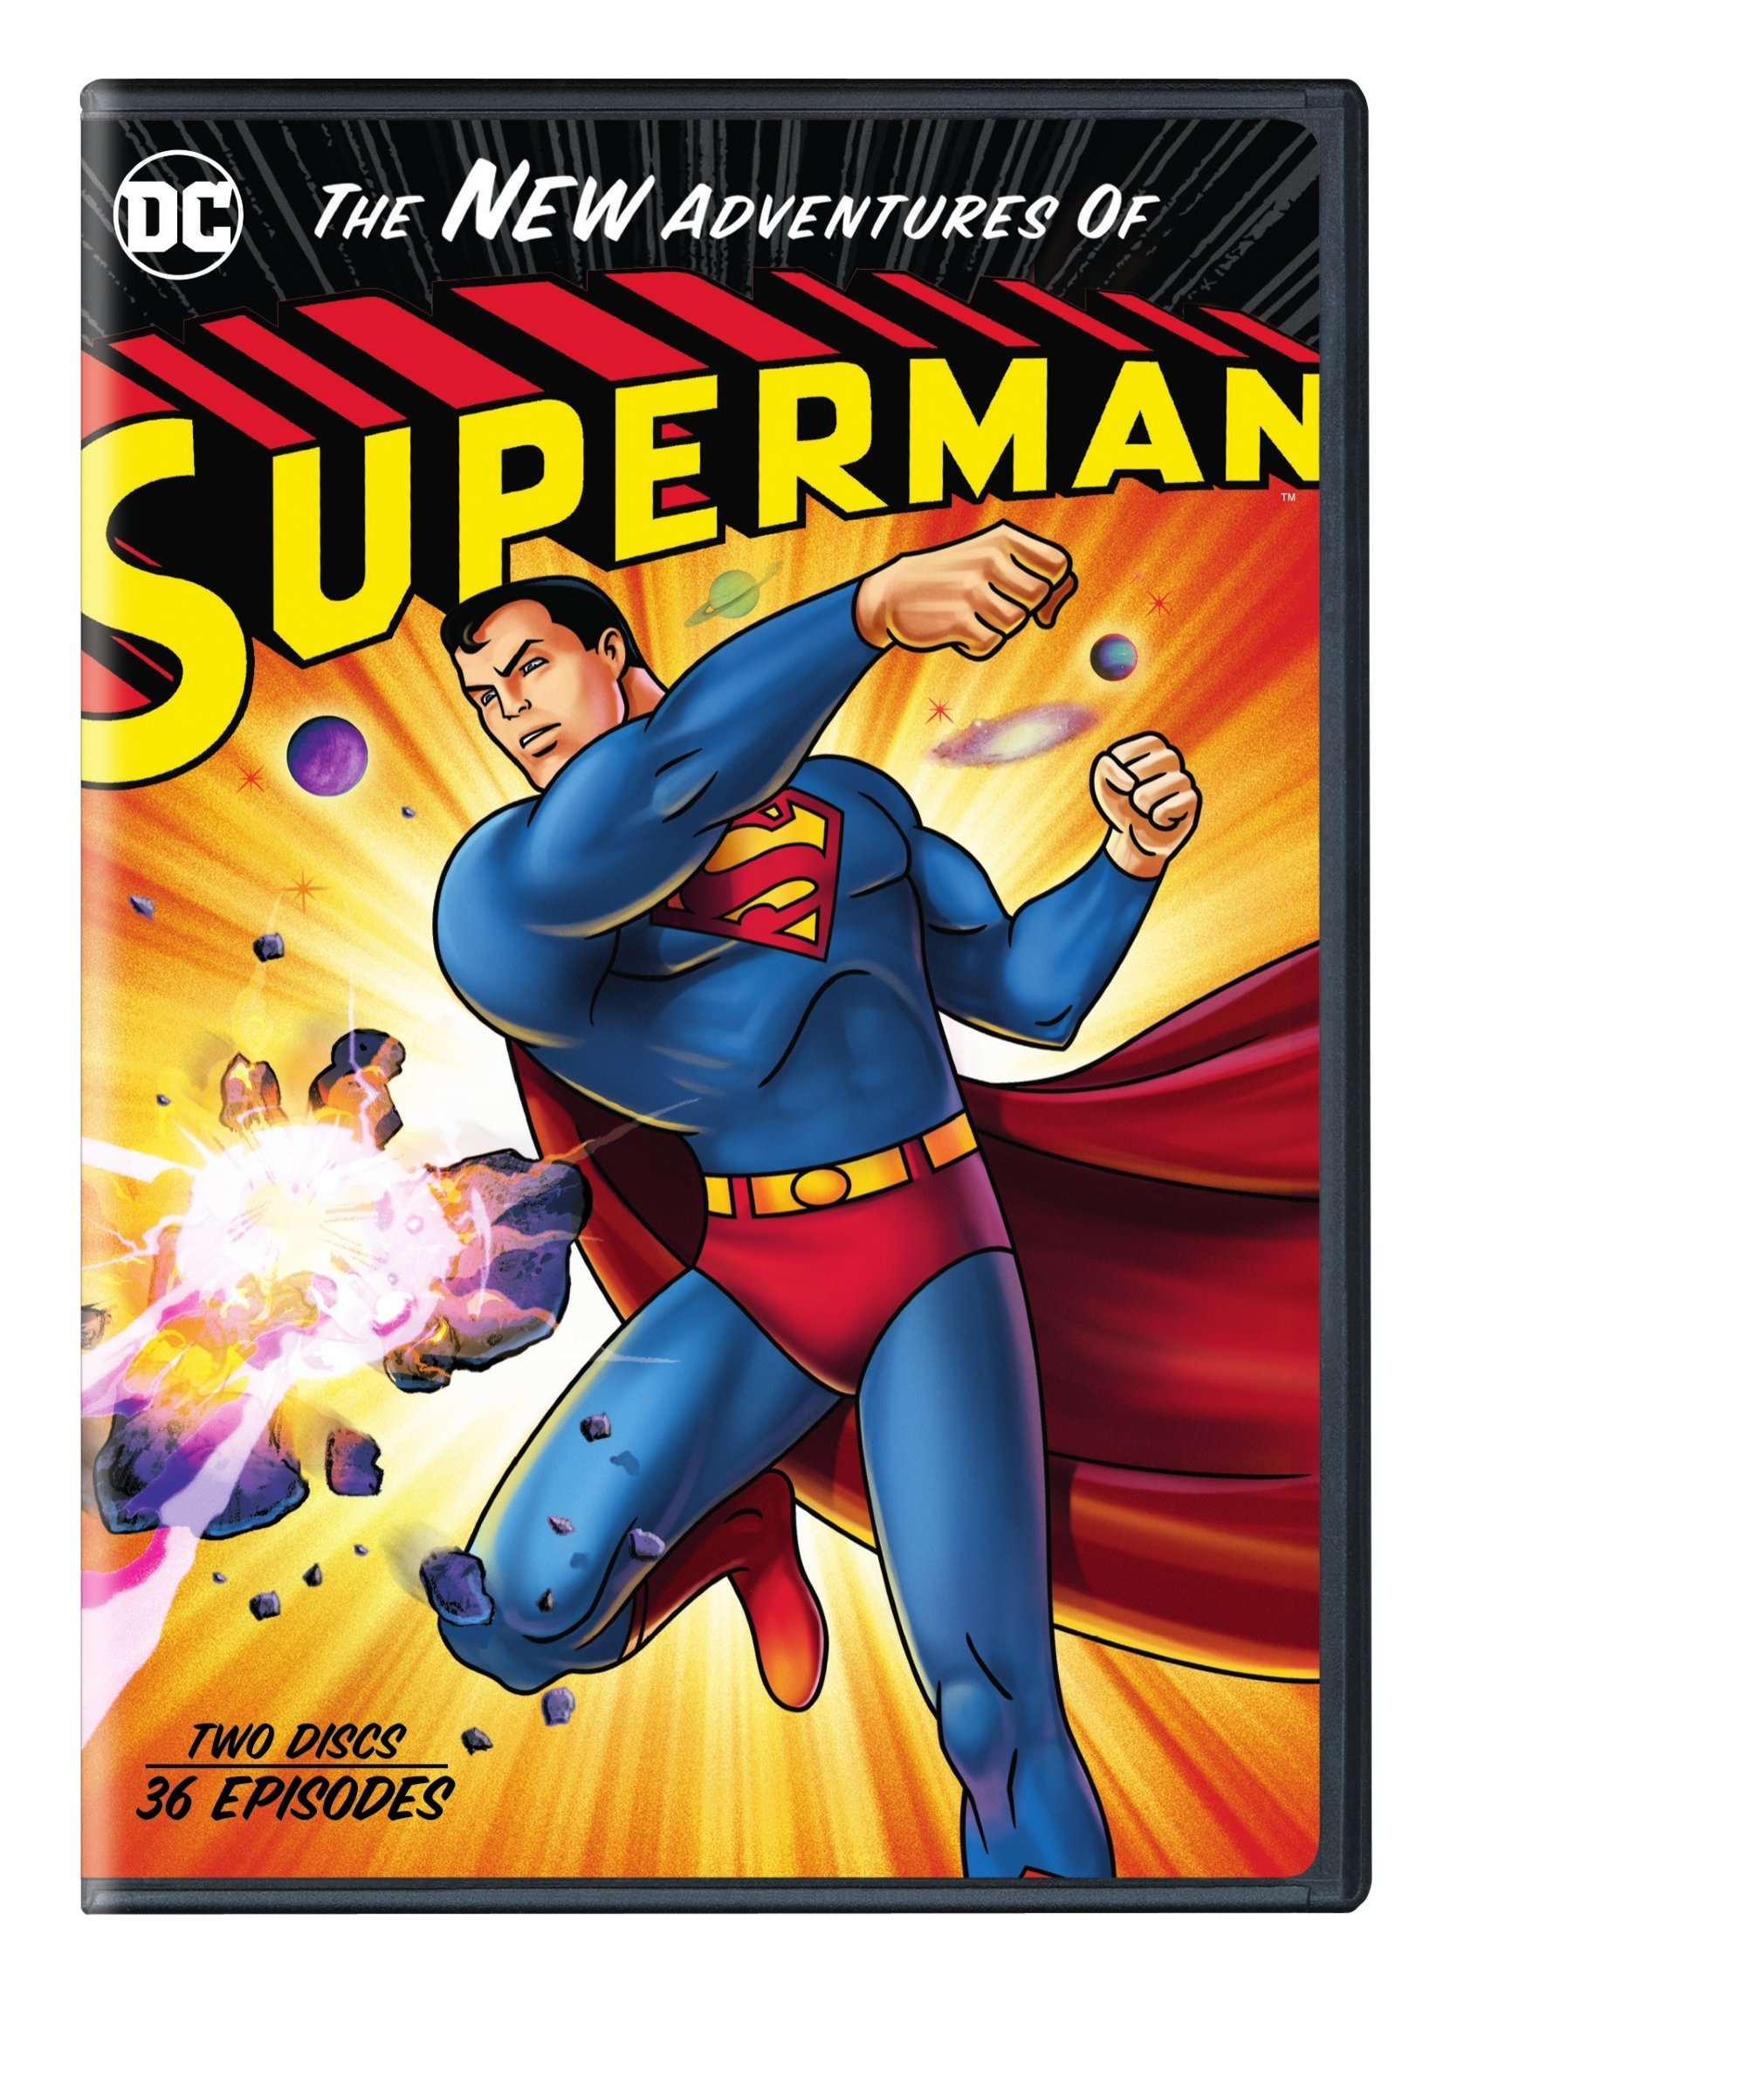 DVD : The New Adventures Of Superman (dc) (Amaray Case, Repackaged)